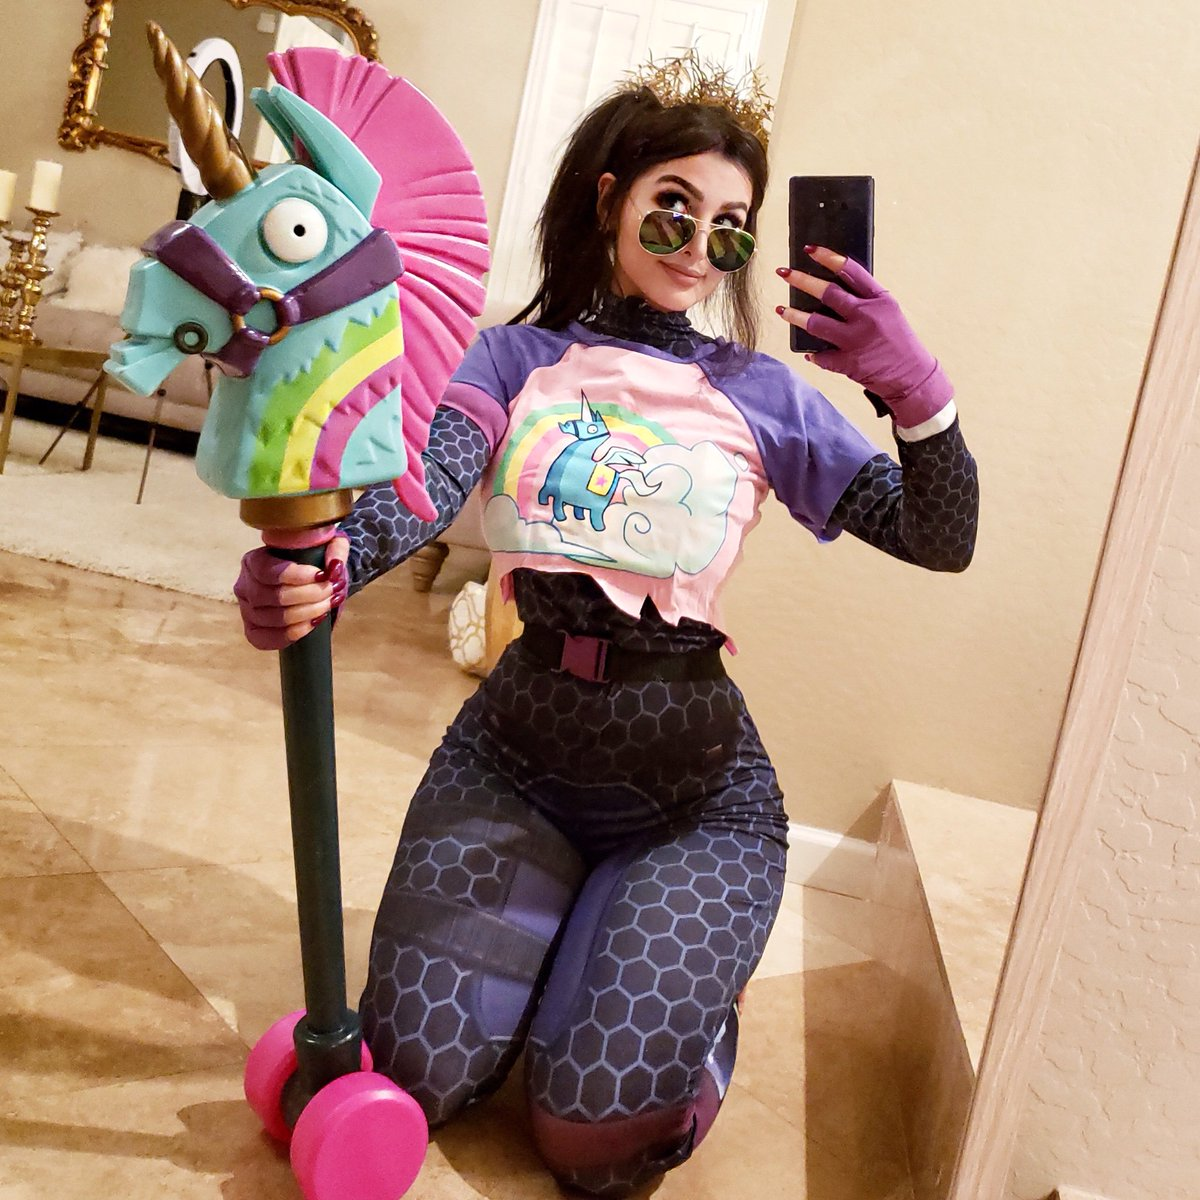 Sssniperwolf thicc